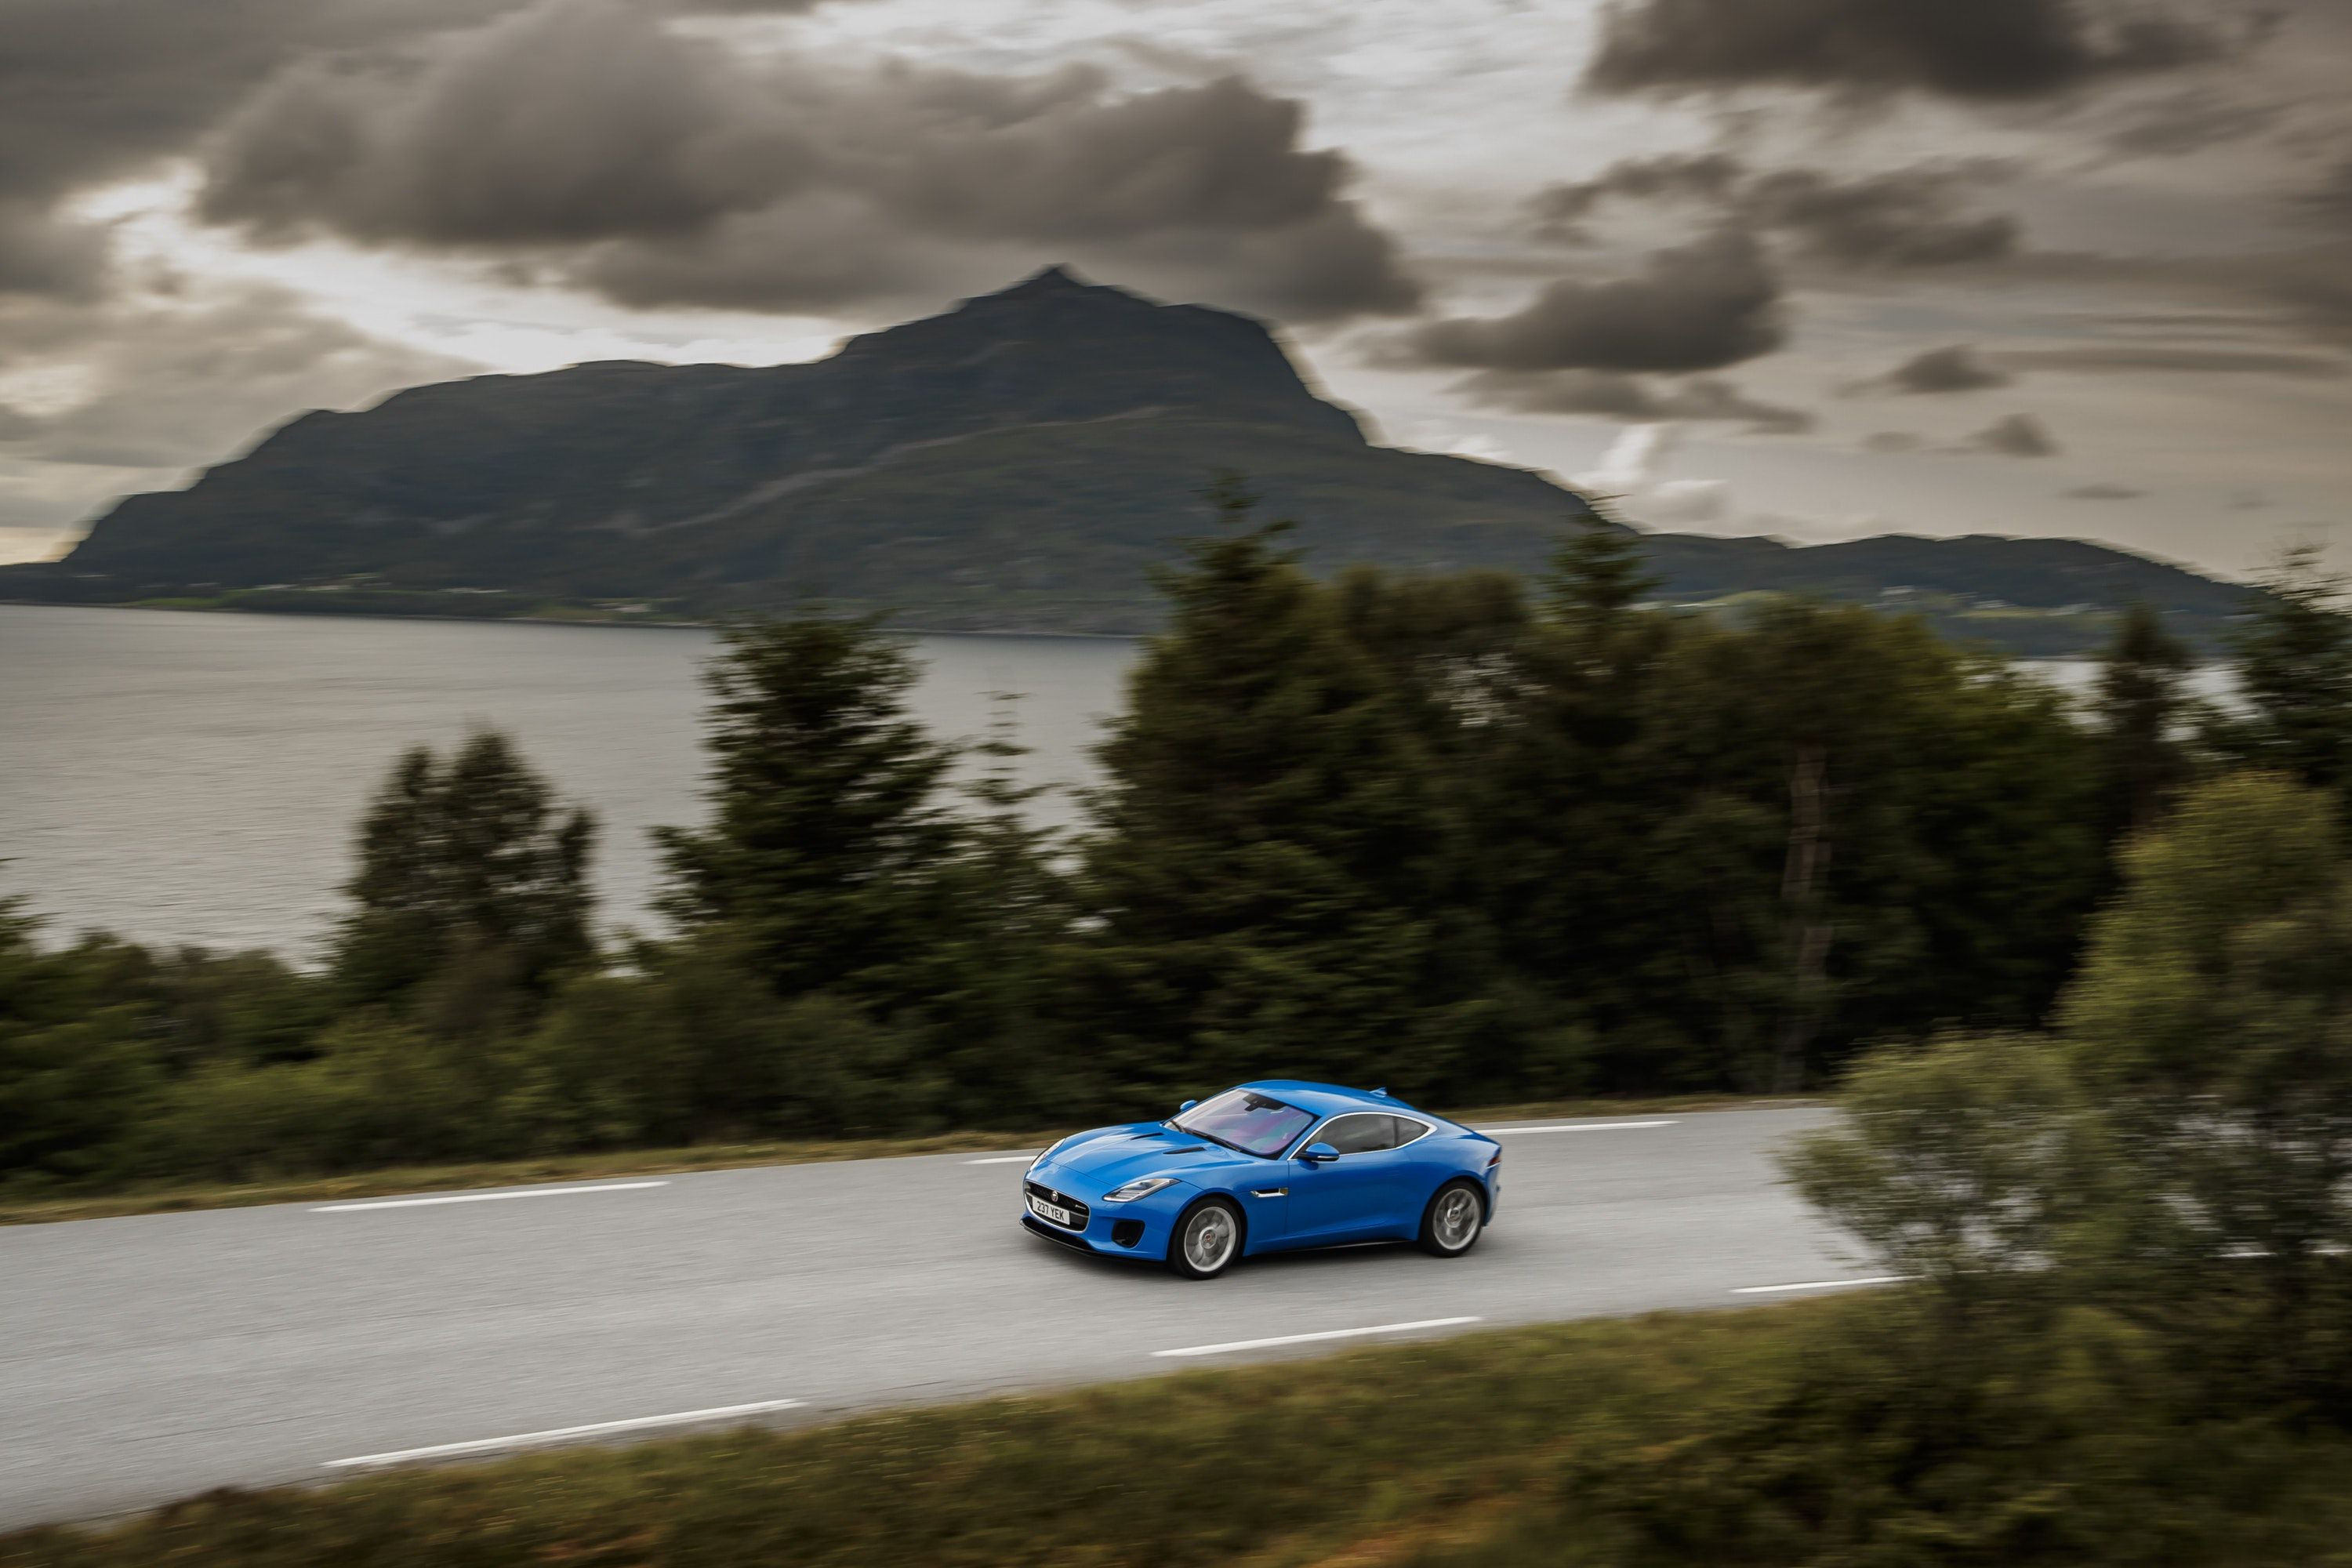 Jaguar F-type driving from afar